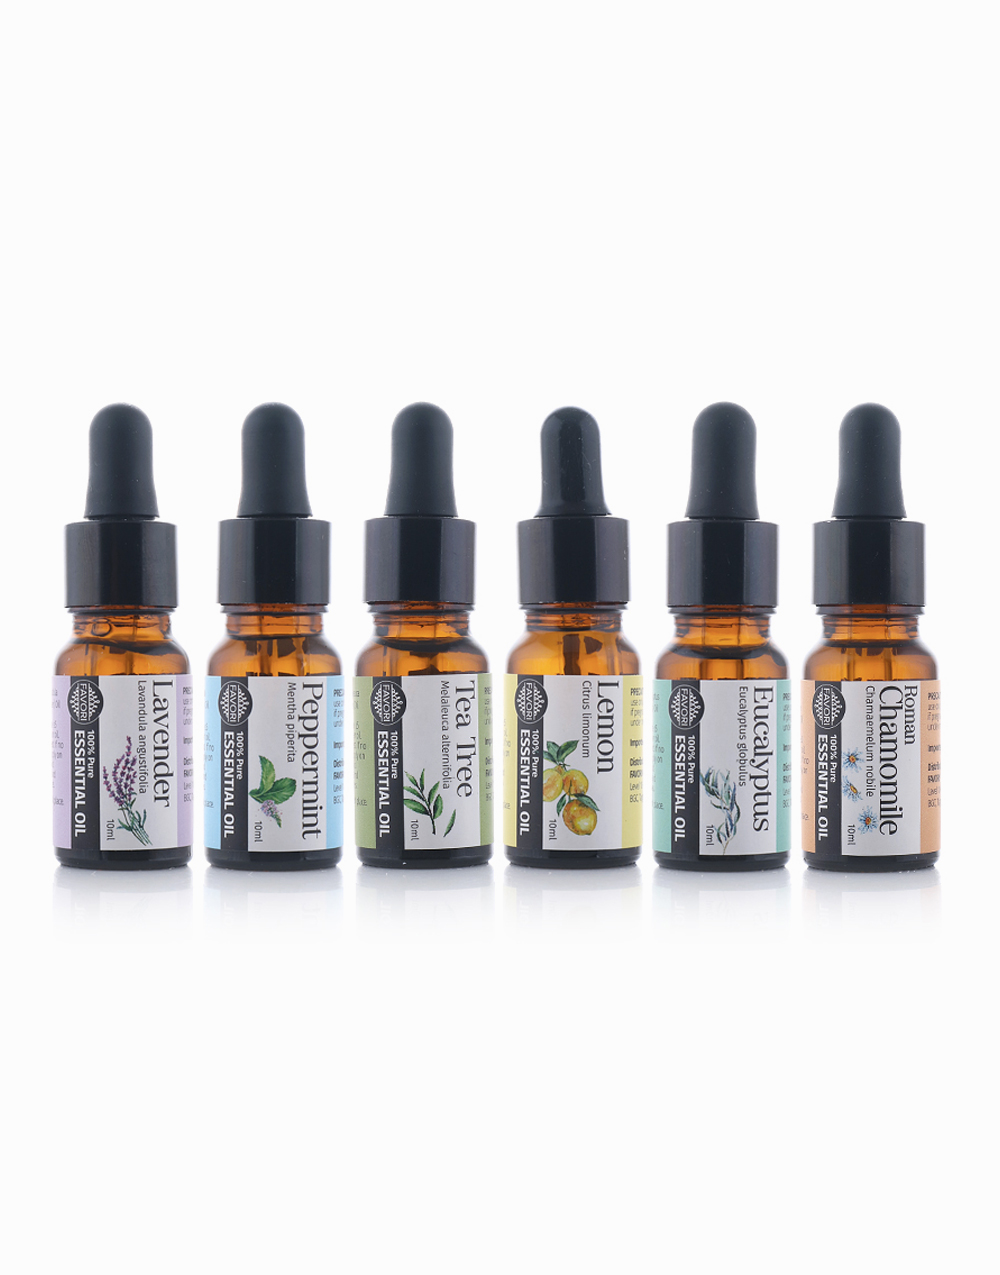 Complete Set of 6 (10ml x 6) by FAVORI